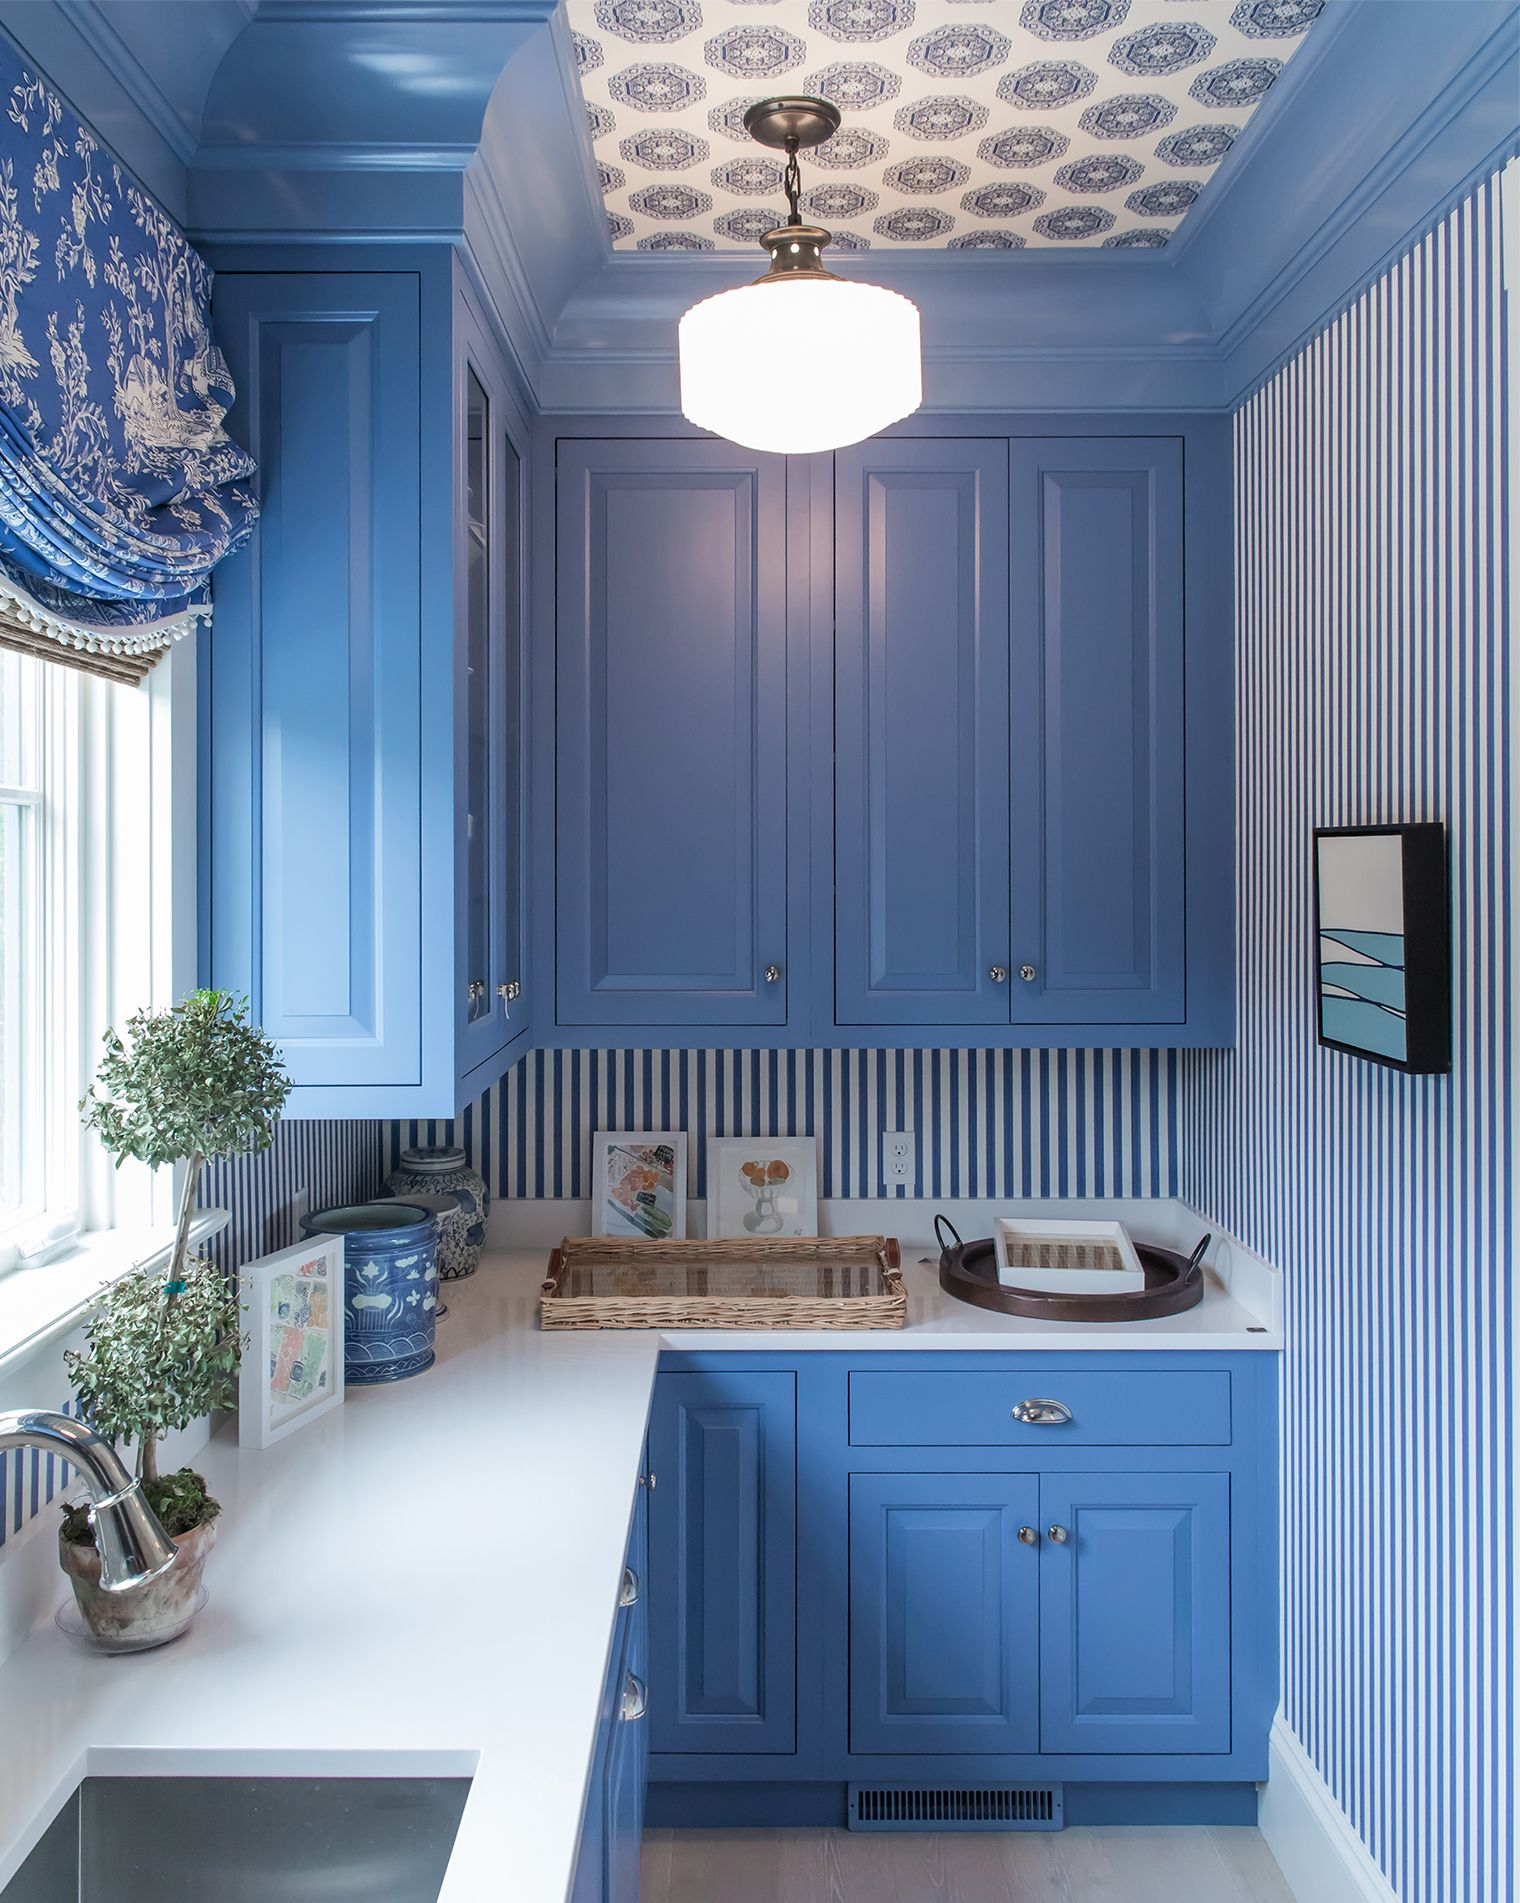 15 Inspirational Ideas For Decorating With Blue And White Kitchen Design Diy Blue Kitchen Cabinets Kitchen Cabinet Remodel